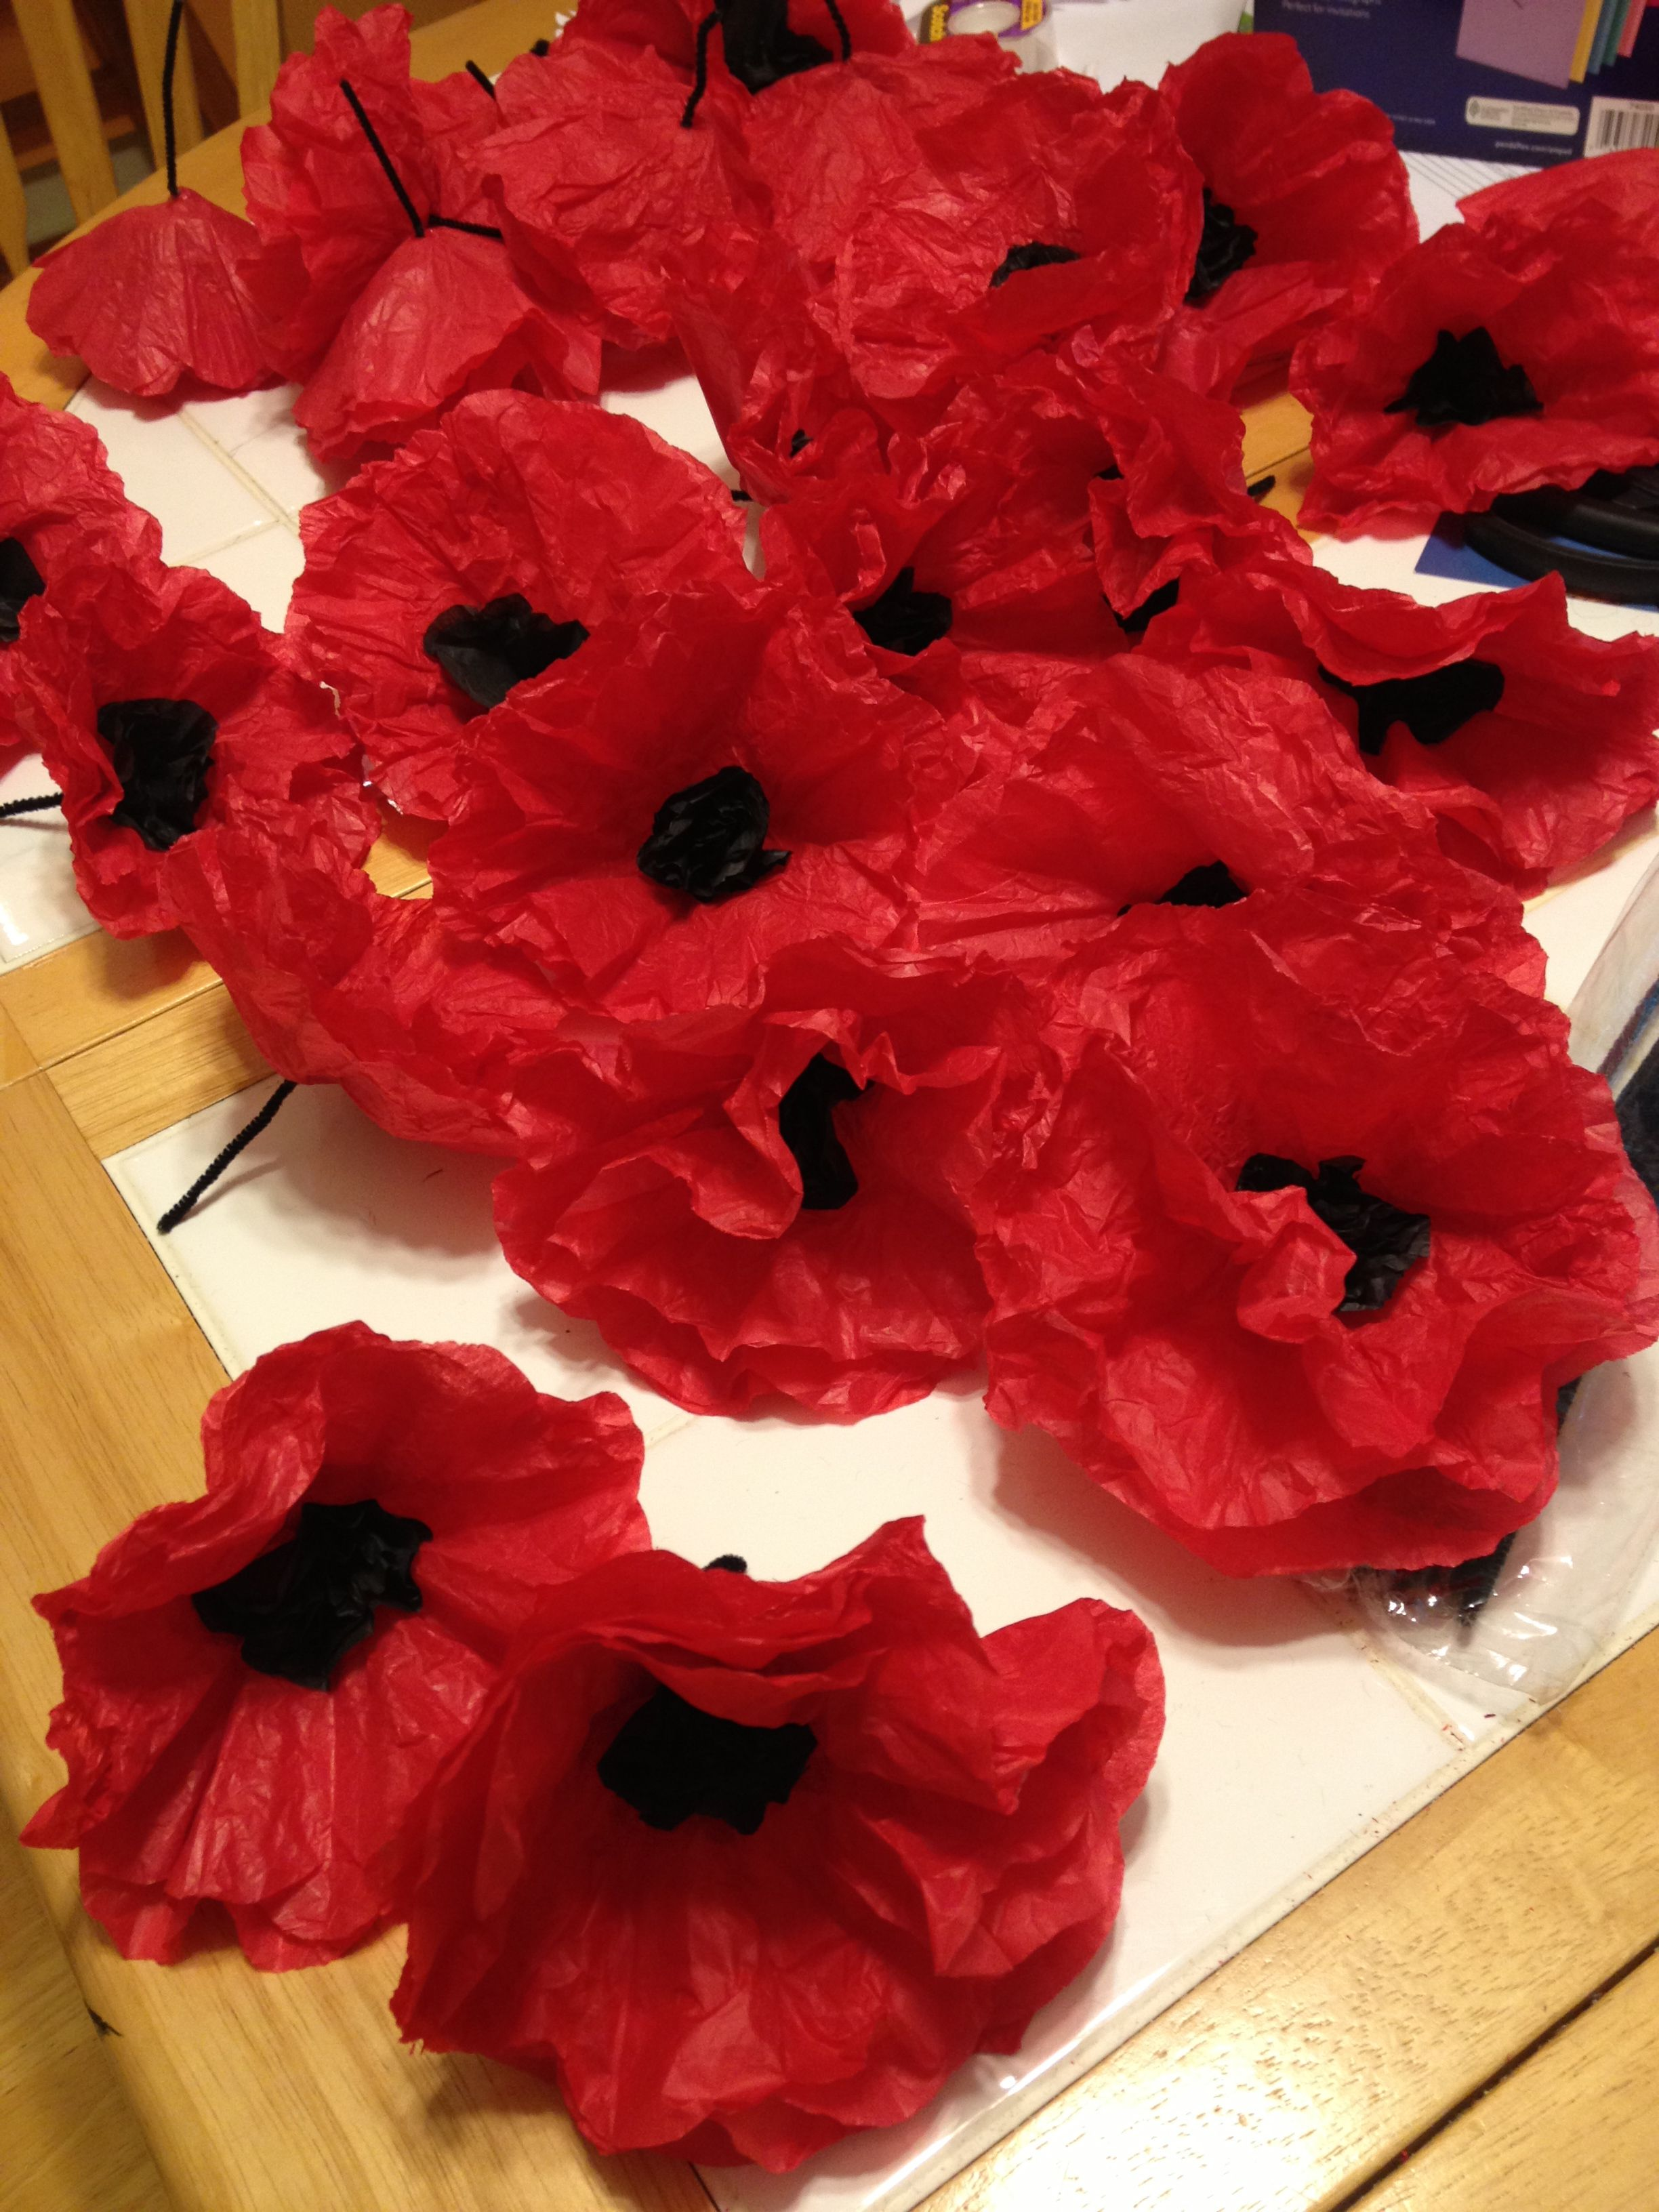 Small flowers for crafts - Tissue Paper Poppies Cut 3 Large Red Circles 3 Small Black Circles Stack Them